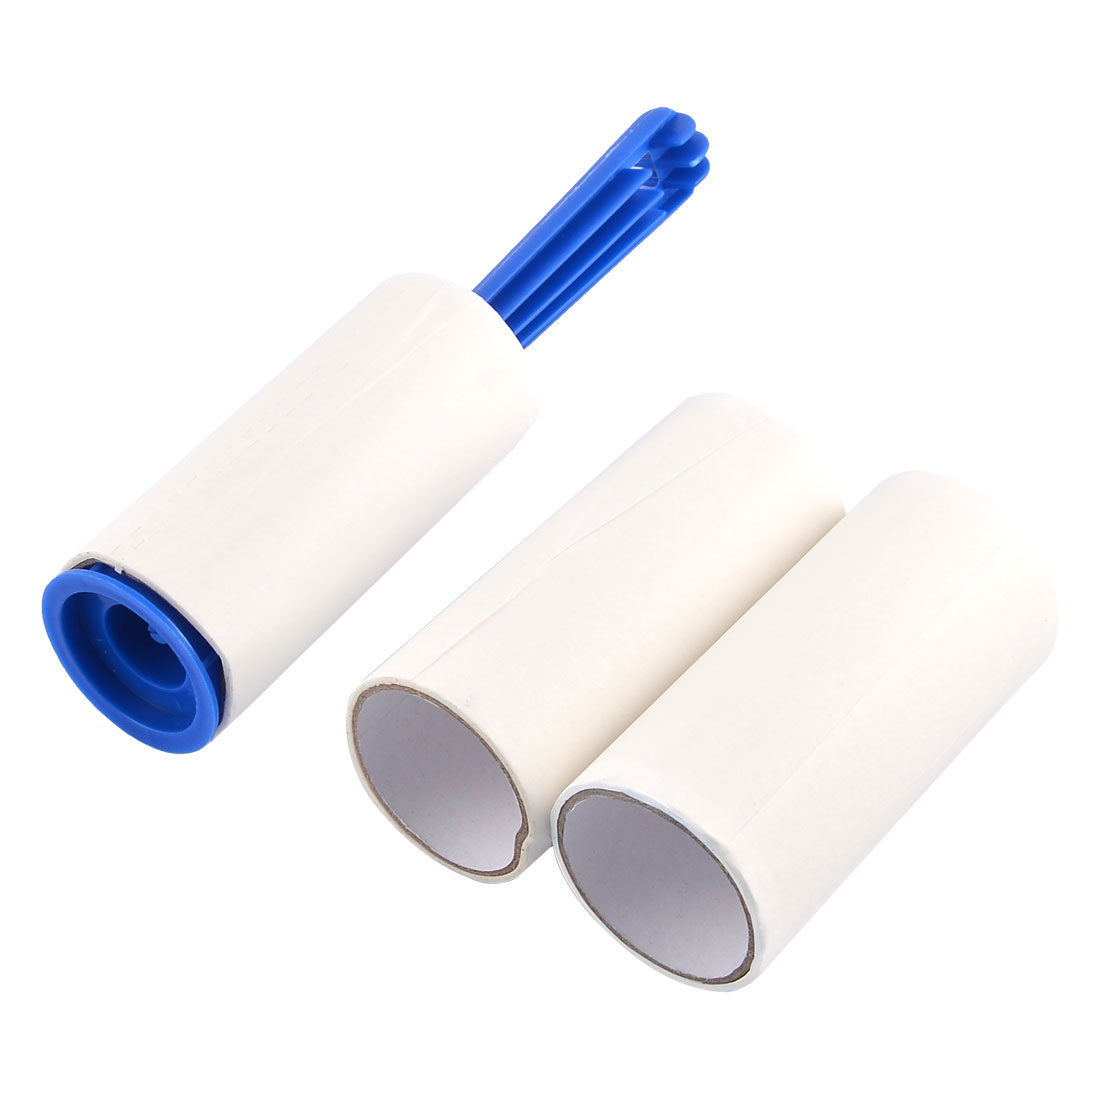 Home Carpet Clothes Cleaning Roller Dust Remover Adhesive Lint Roller